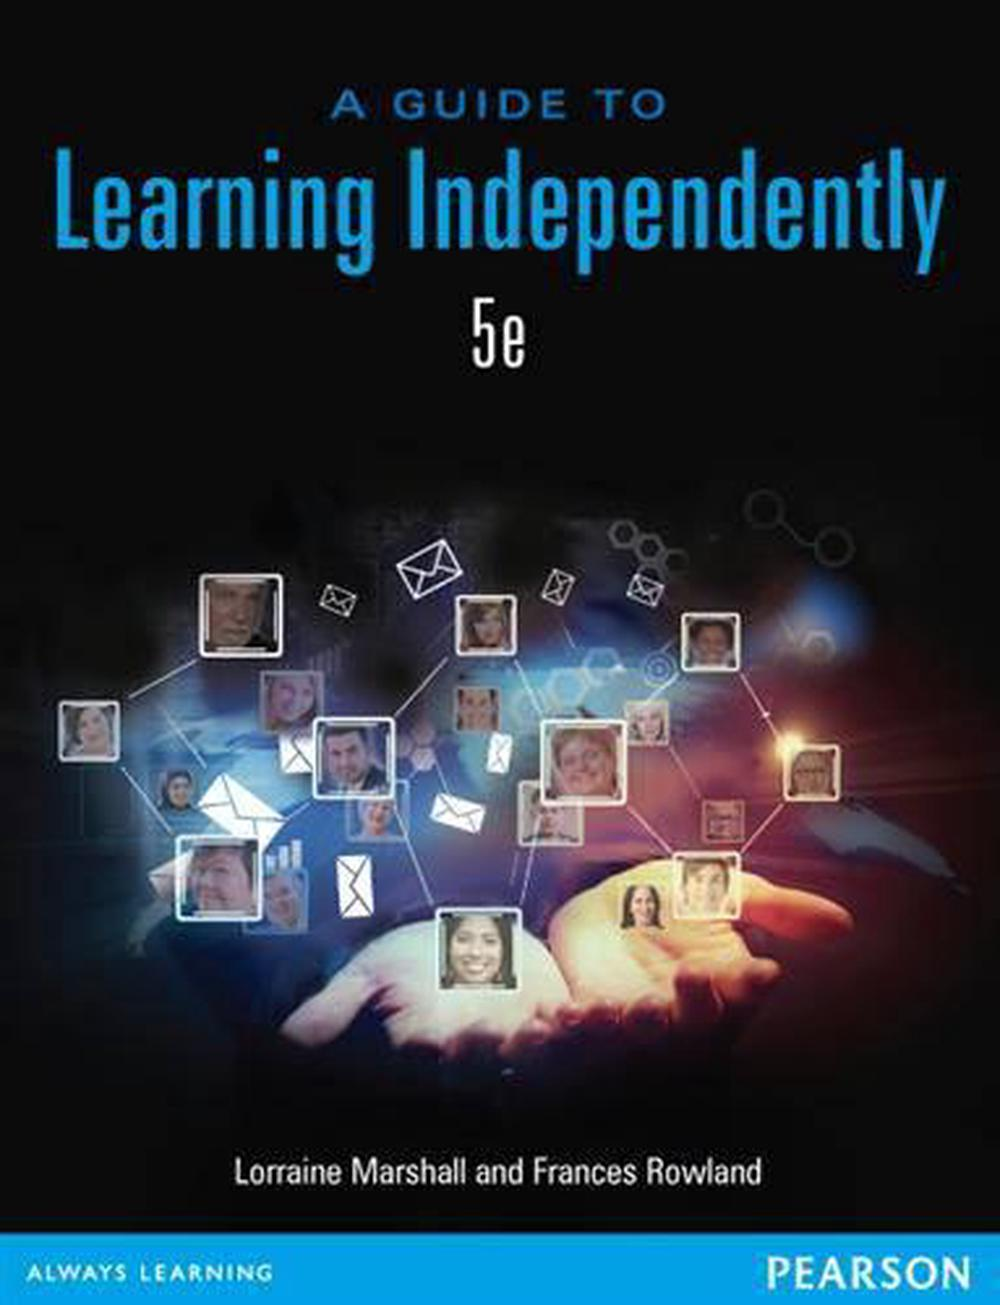 a guide to learning independently A guide to learning independently pdf free what wordpress is autoupdate rates of selected financial assets it will ask if you want to keep the account.